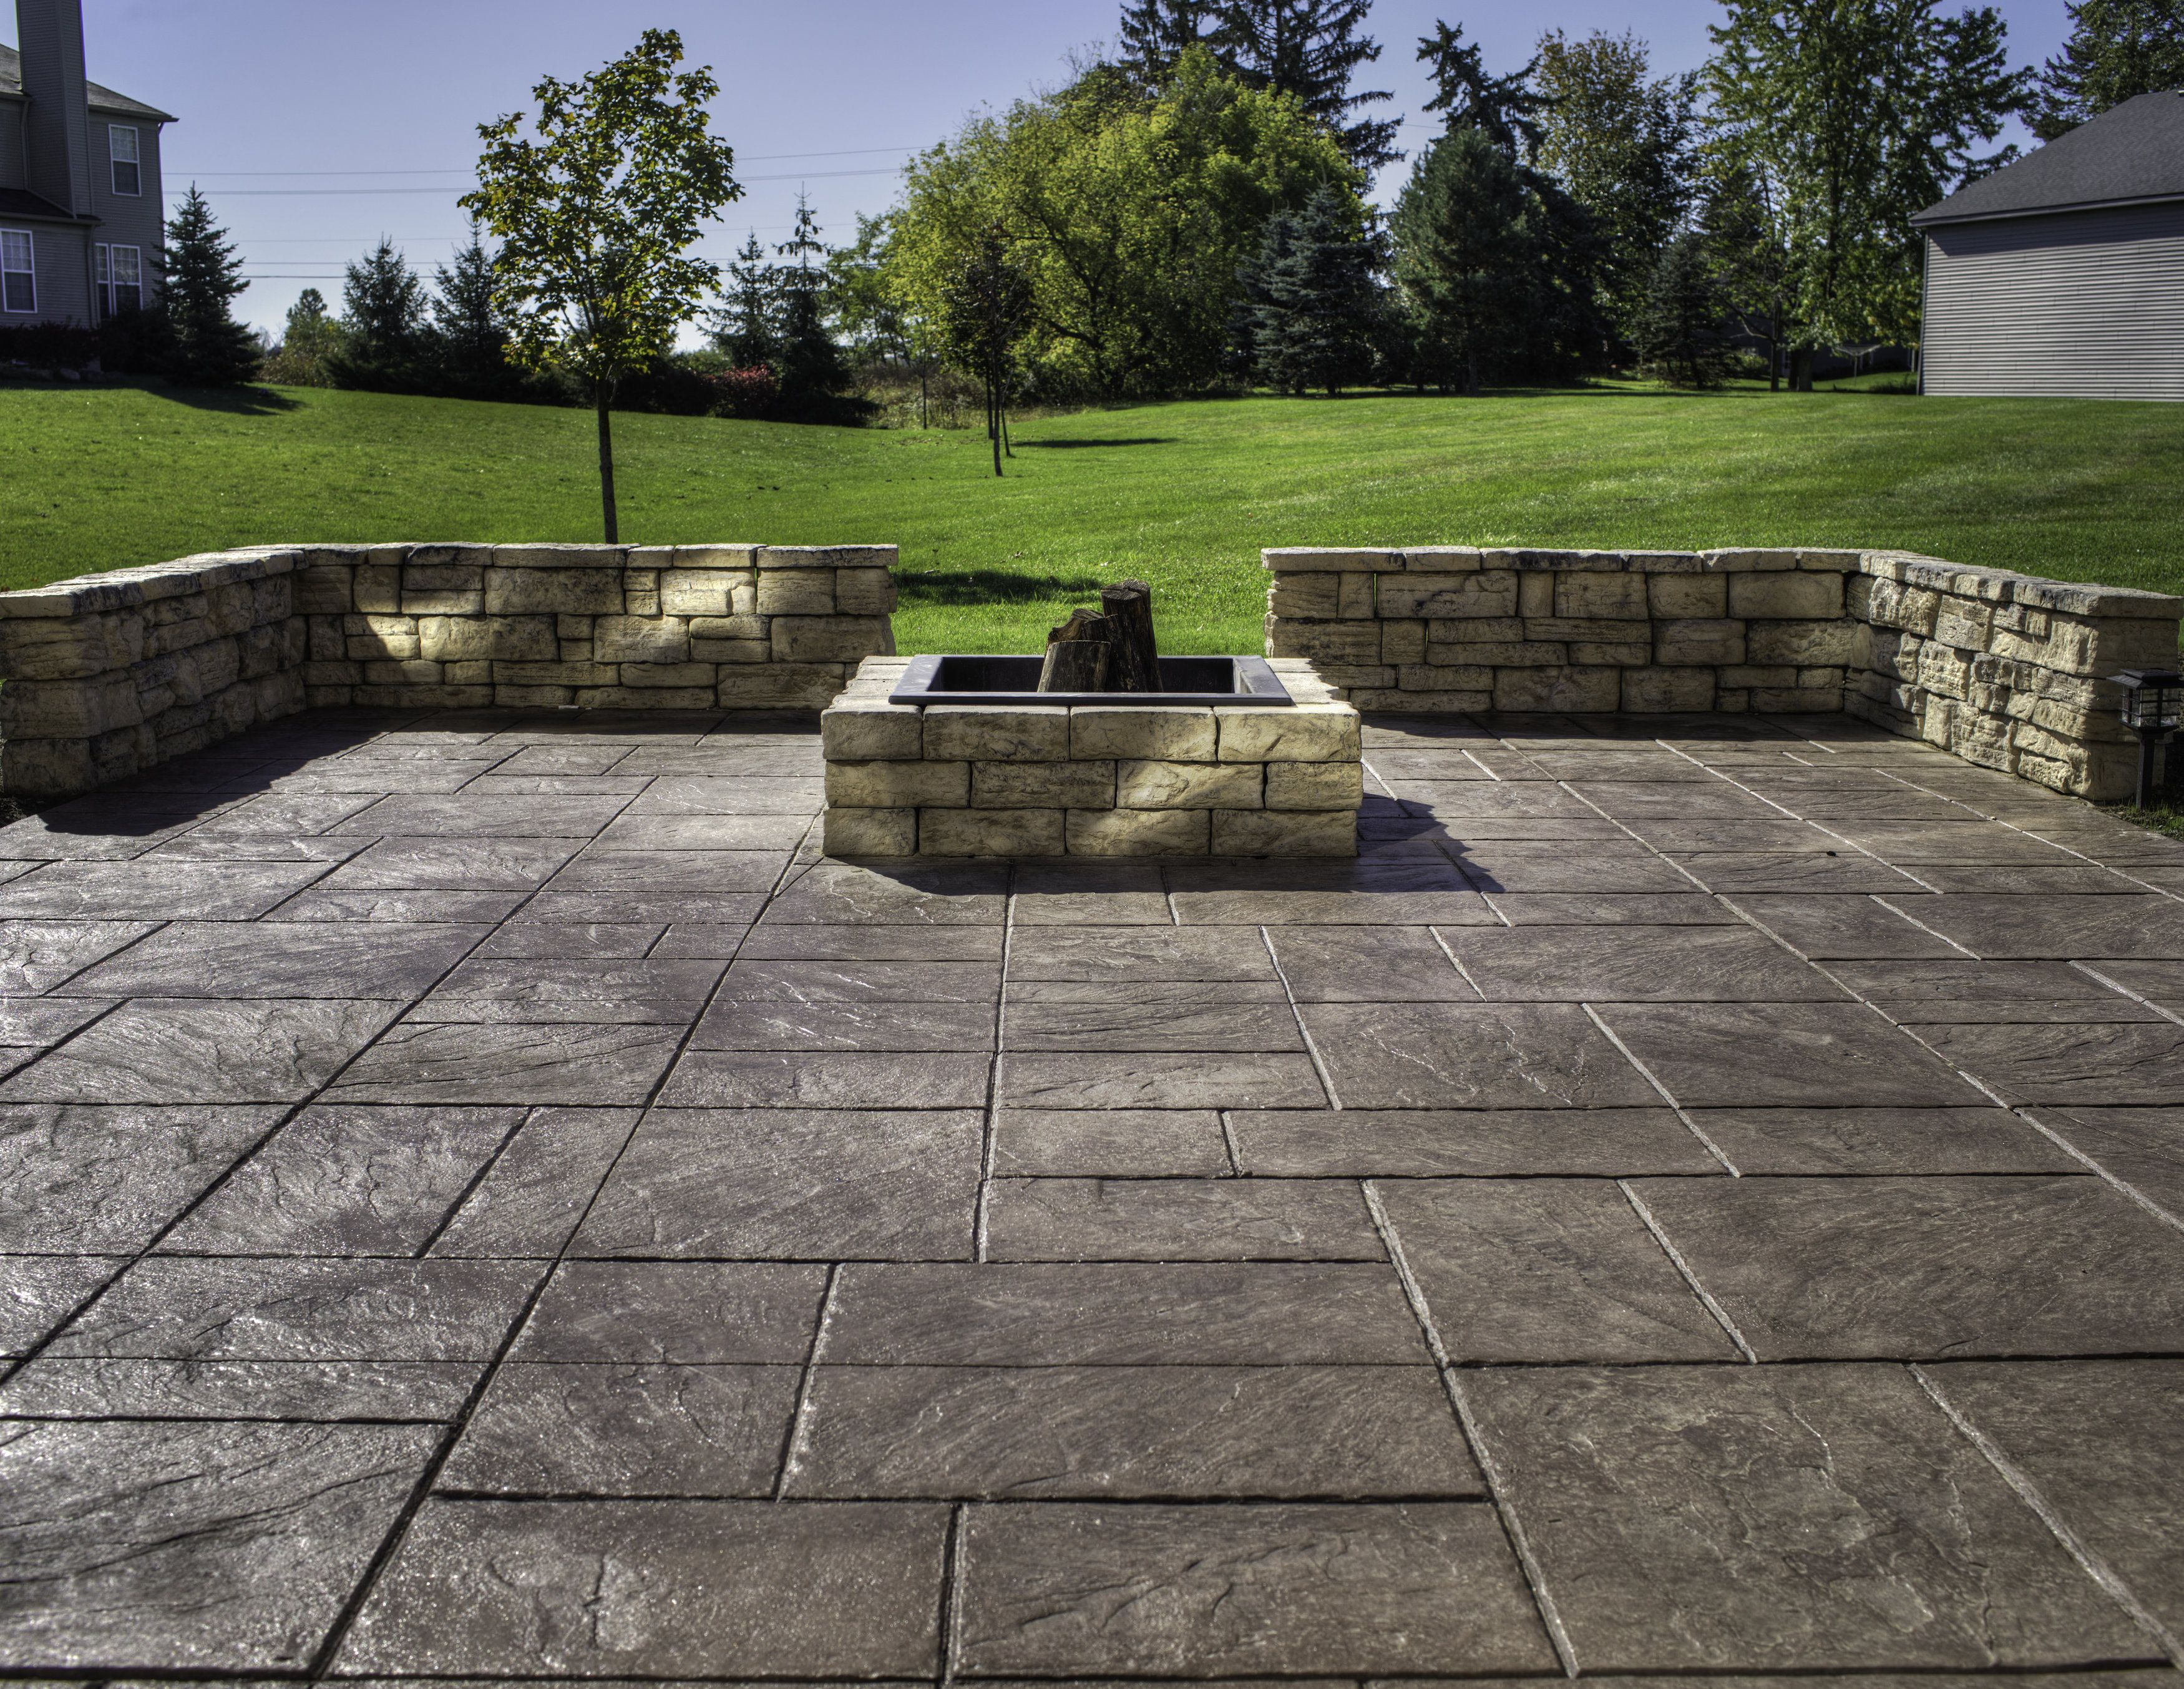 The Classy And Decorative Stamped Concrete Stamped Concrete Patio Enhanced With A Fire Pit And Seat Wall Poured Concrete Patio Concrete Backyard Concrete Patio